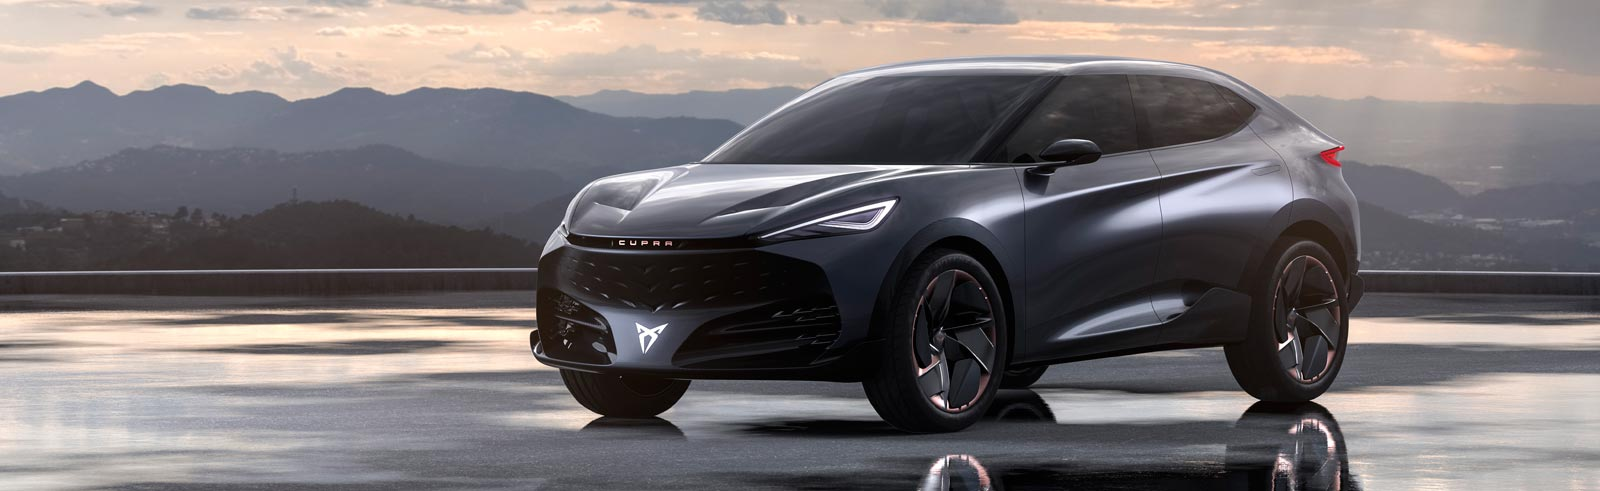 SEAT unveils the Cupra Tavascan - its first all-electric SUV